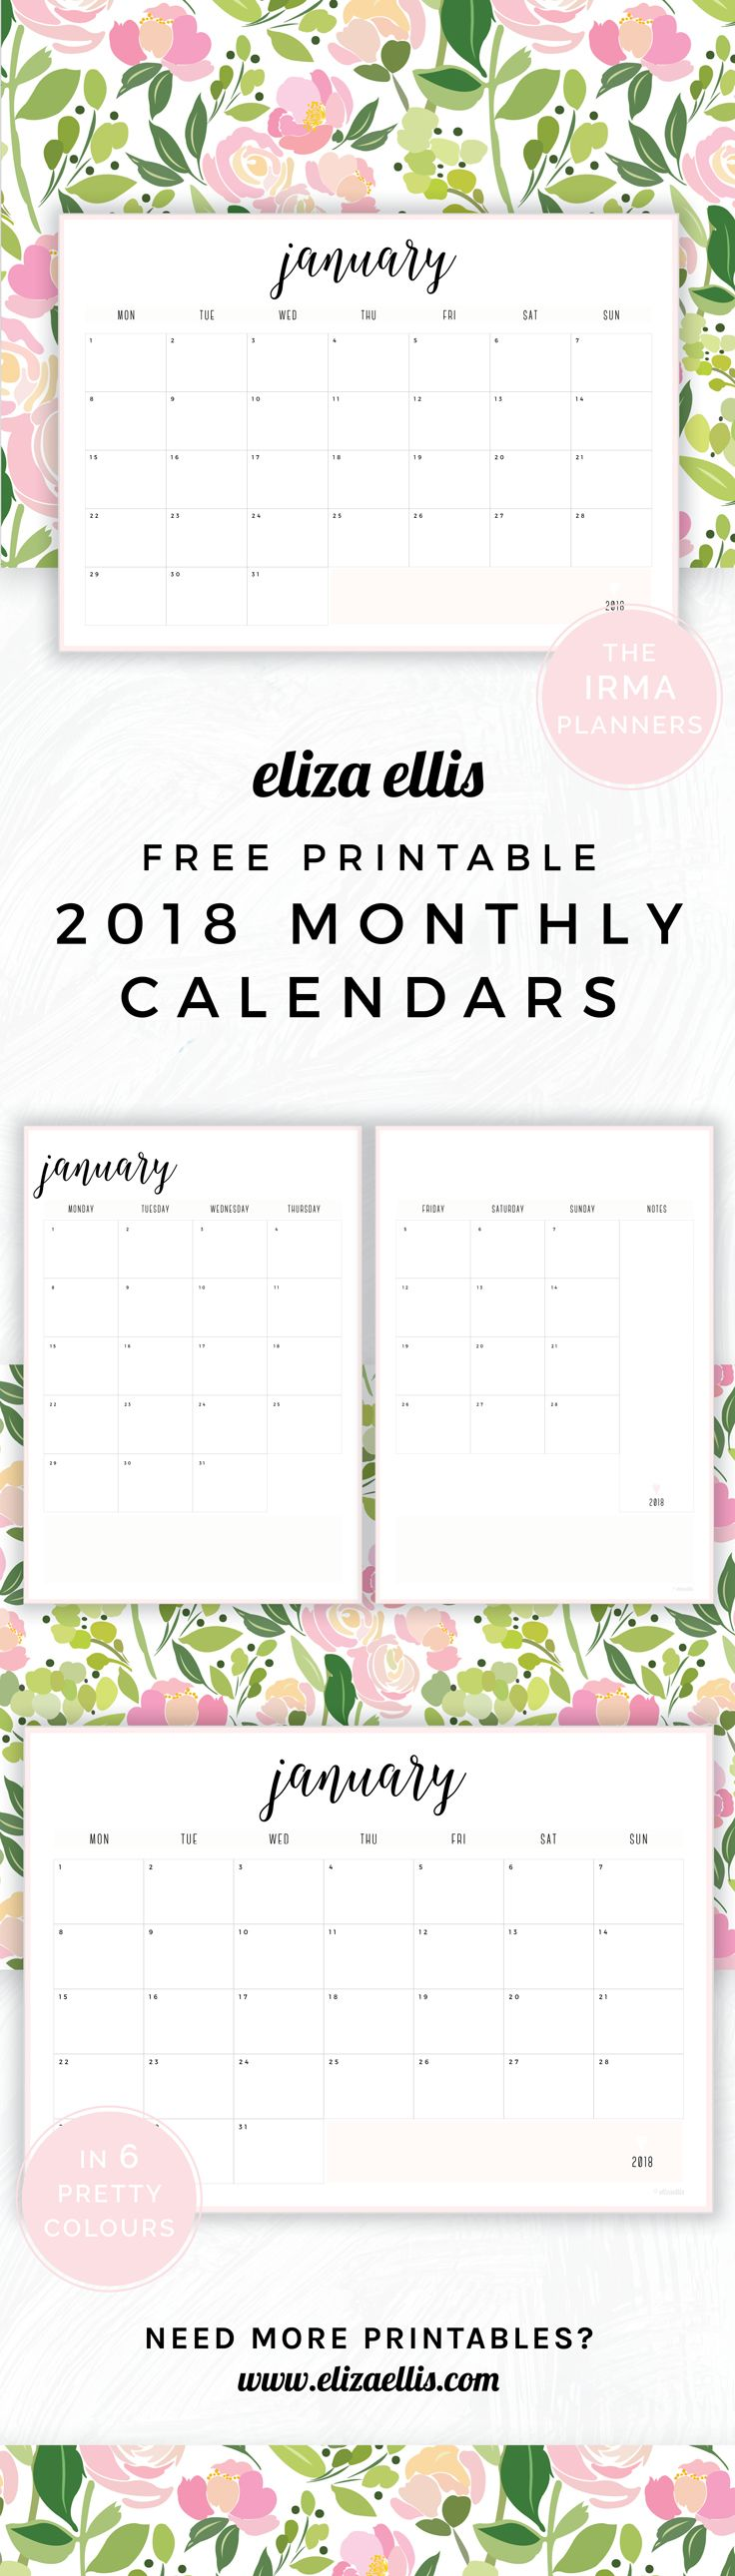 Free Printable 2018 Irma Monthly Calendars // Eliza Ellis. Awesome 2018 monthly calendars and planners that are absolutely free - print to A4 or A5 and available in 6 colours. Great for work, home, SAHMs, WAHMs, students, college, university, teachers and mums. Also fantastic as editorial calendars, social media calendars, campaign planners, to track allergies and health symptoms, for large project or event planning, as a fitness calendar, and to track goals and habits!